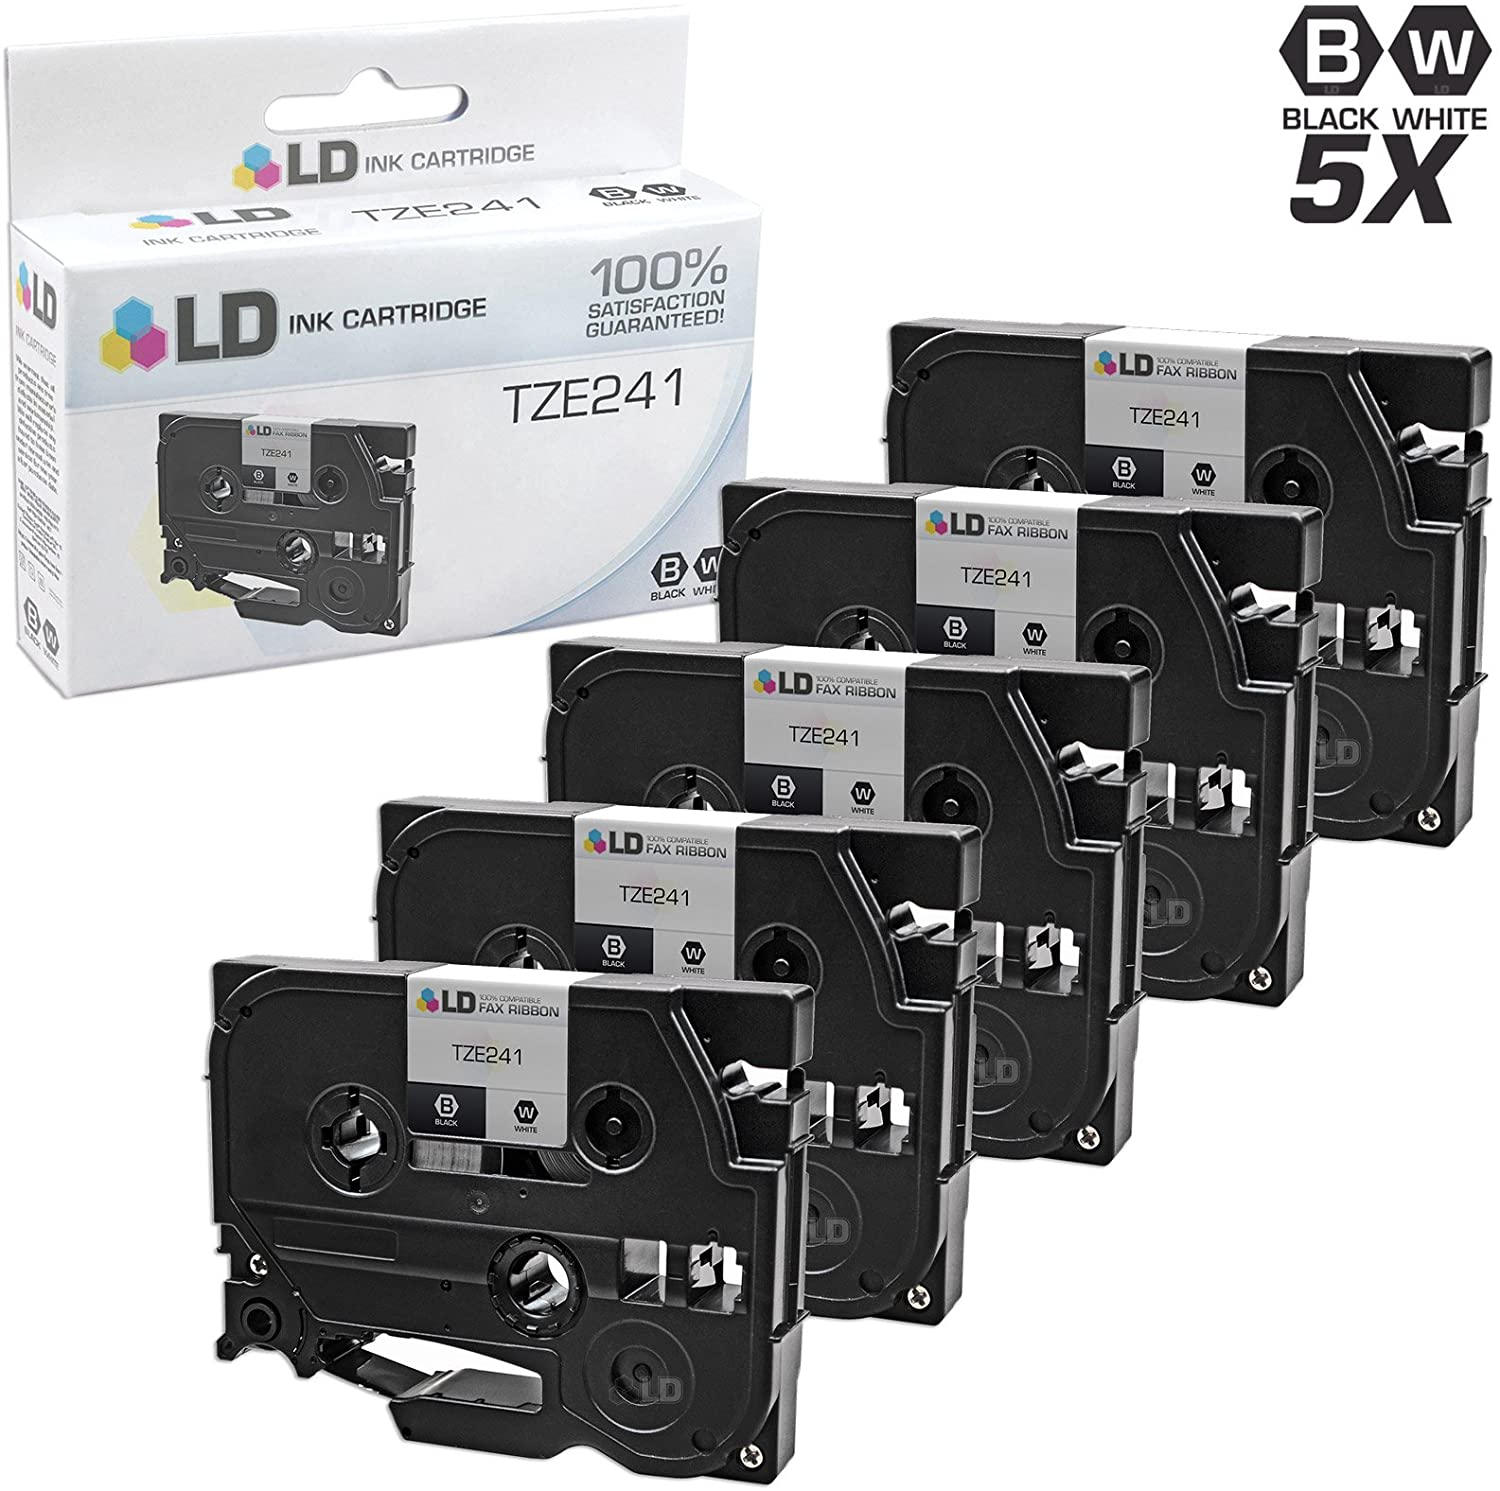 LD Compatible Laminated Tape Cartridge Replacement for Brother TZe241 0.7 in x 26.2 ft (Black on White, 5-Pack)